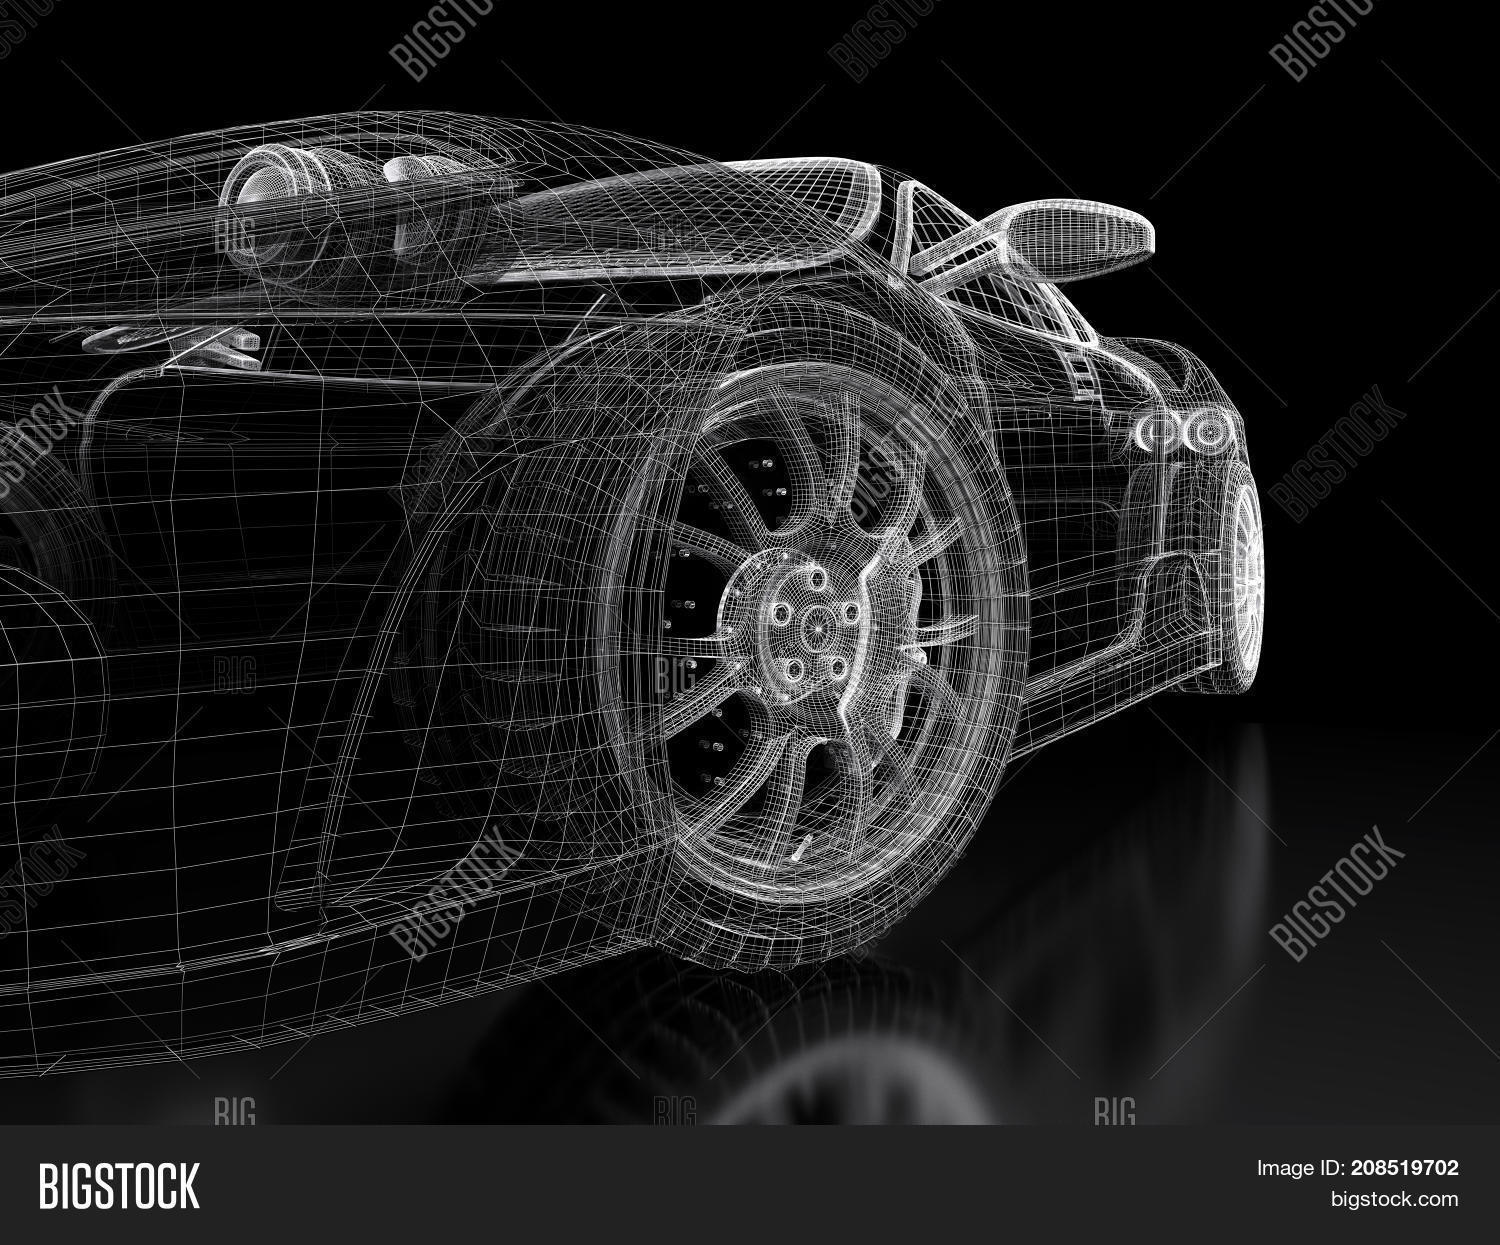 Car vehicle 3d image photo free trial bigstock car vehicle 3d blueprint mesh model on a black background 3d rendered image malvernweather Gallery